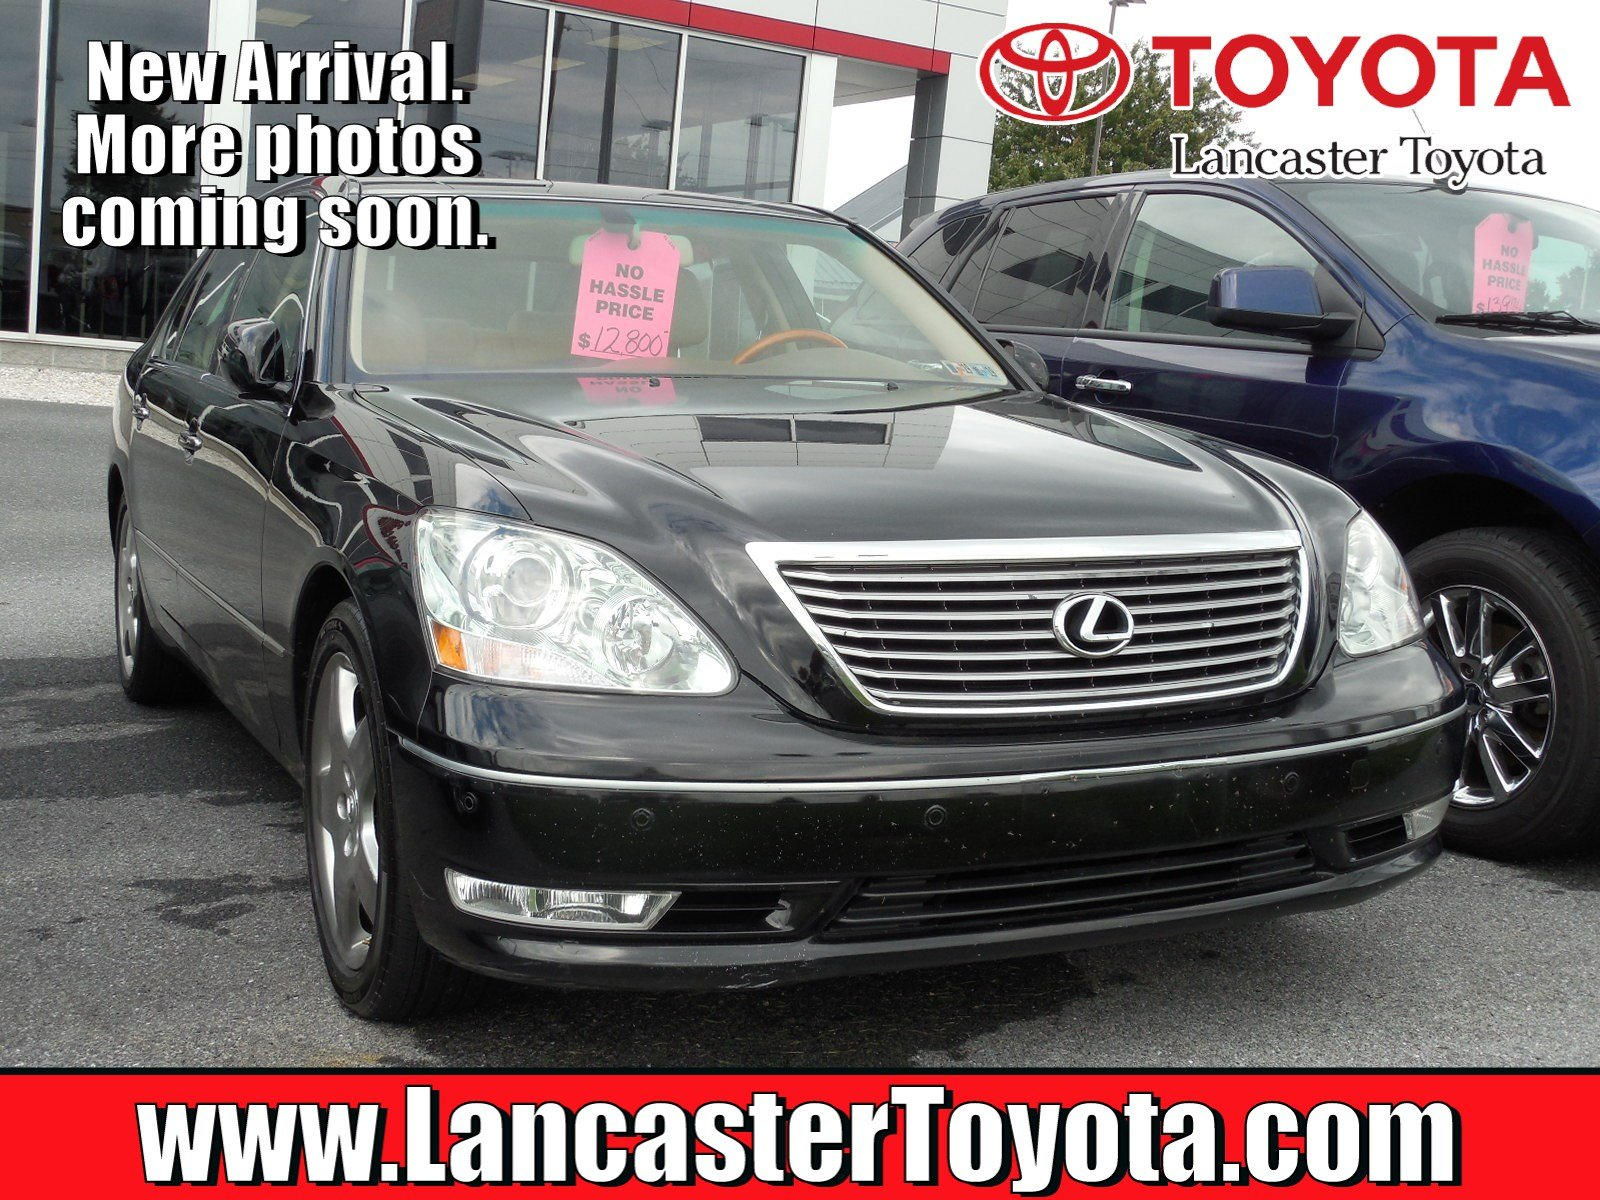 Pre Owned 2006 Lexus LS 430 4DR SDN AT